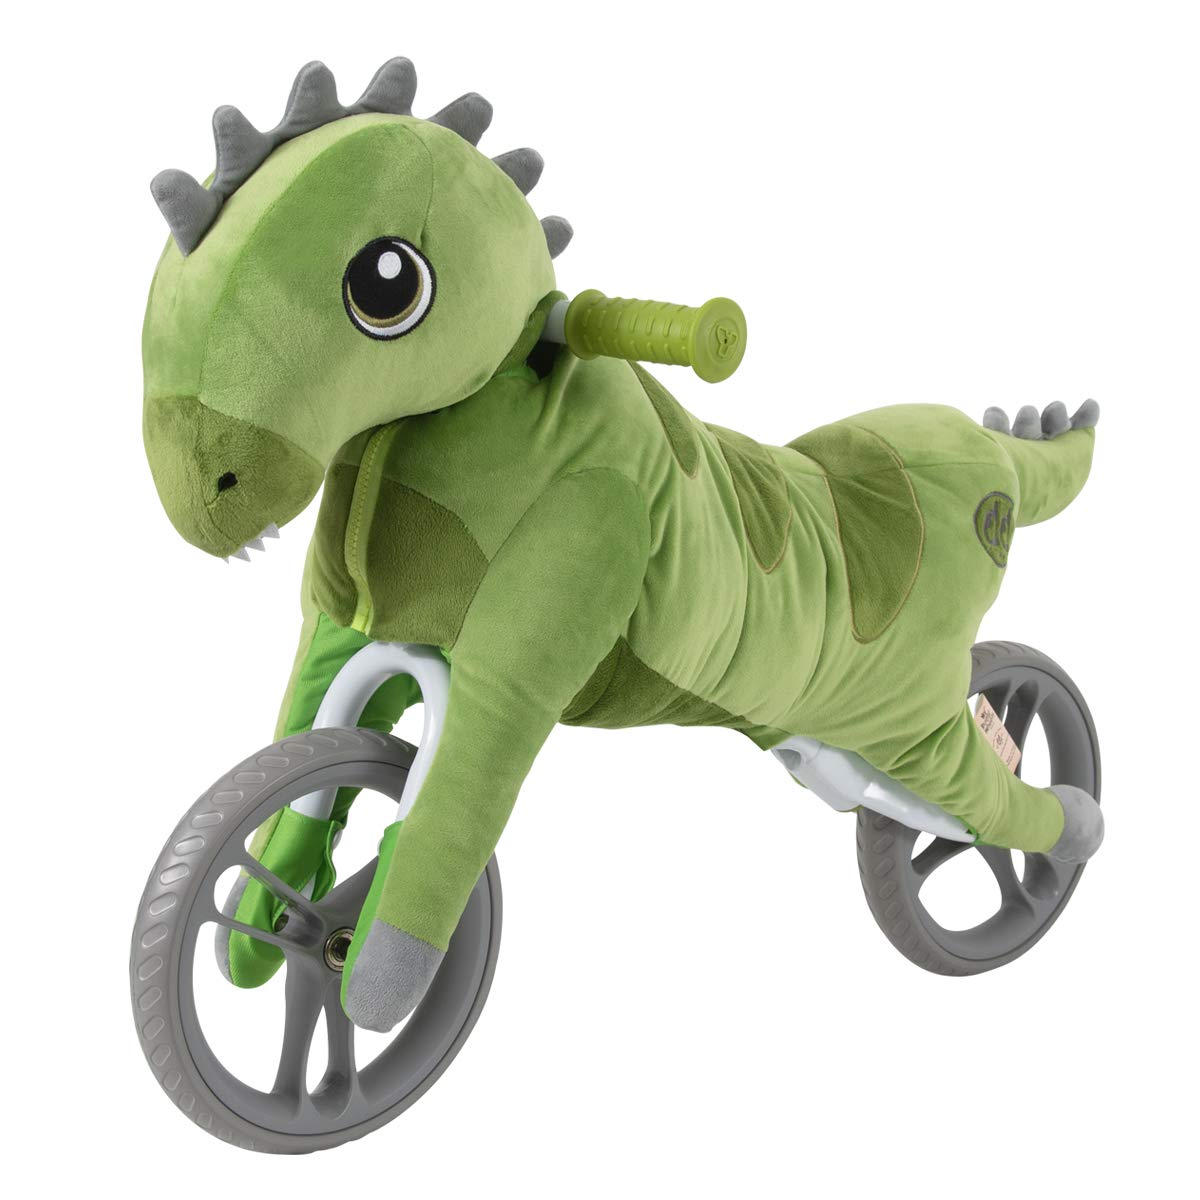 Yvolution My Buddy Wheels Dino Balance Bike with Plush Toy | Training Bicycle for Toddlers Age 2 Years +